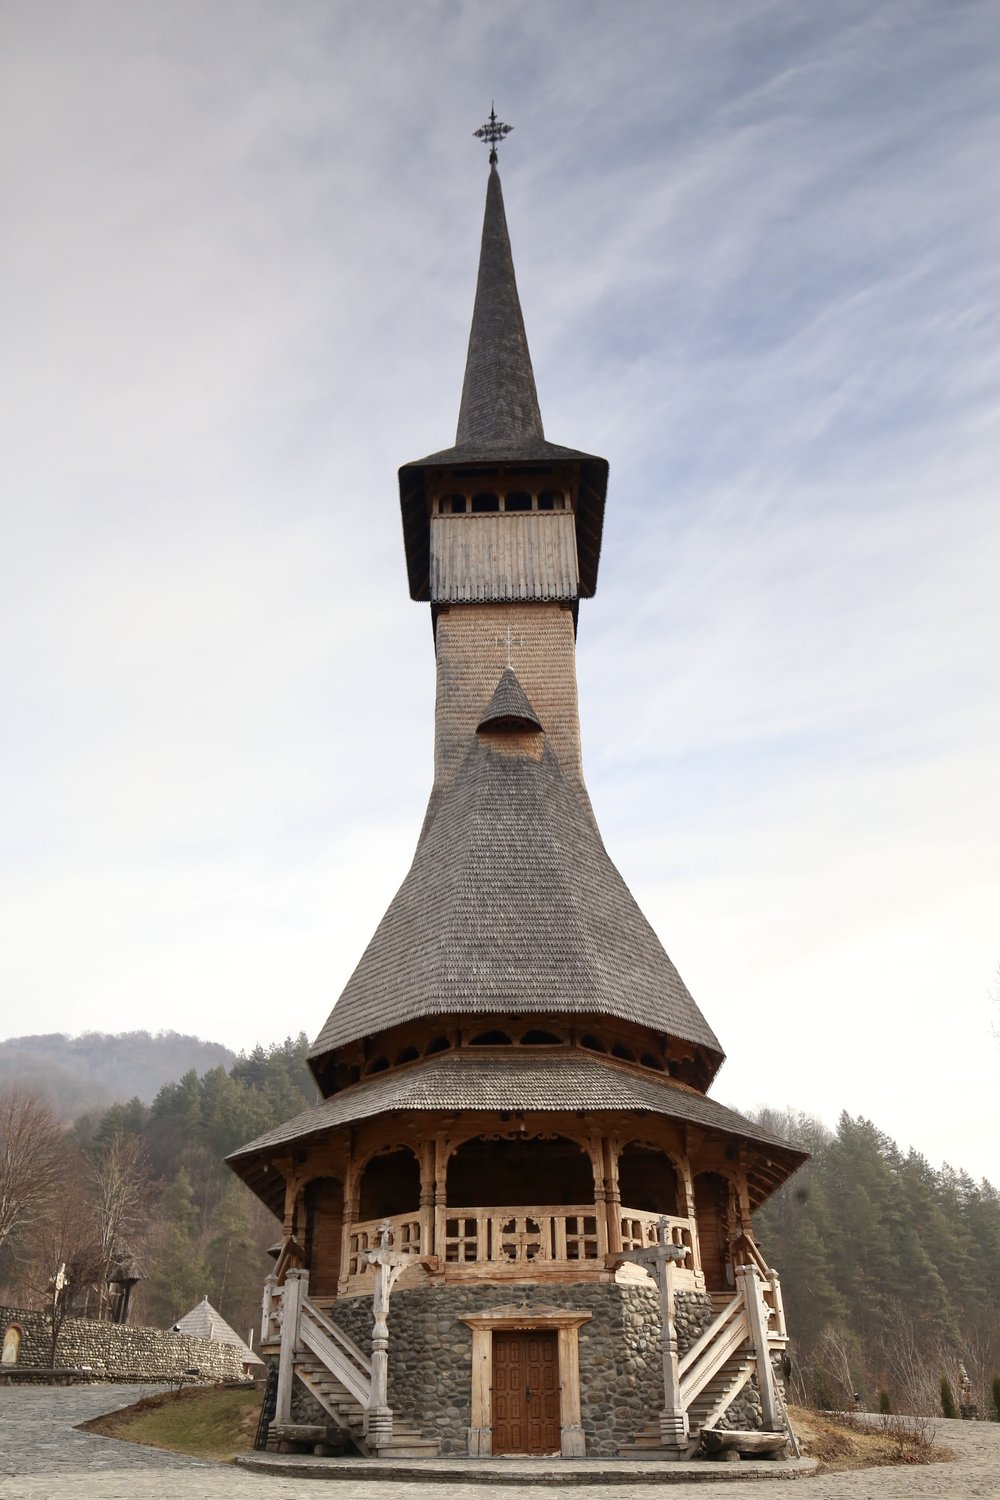 The tall wooden church spires of Bârsana monastery in Romania.